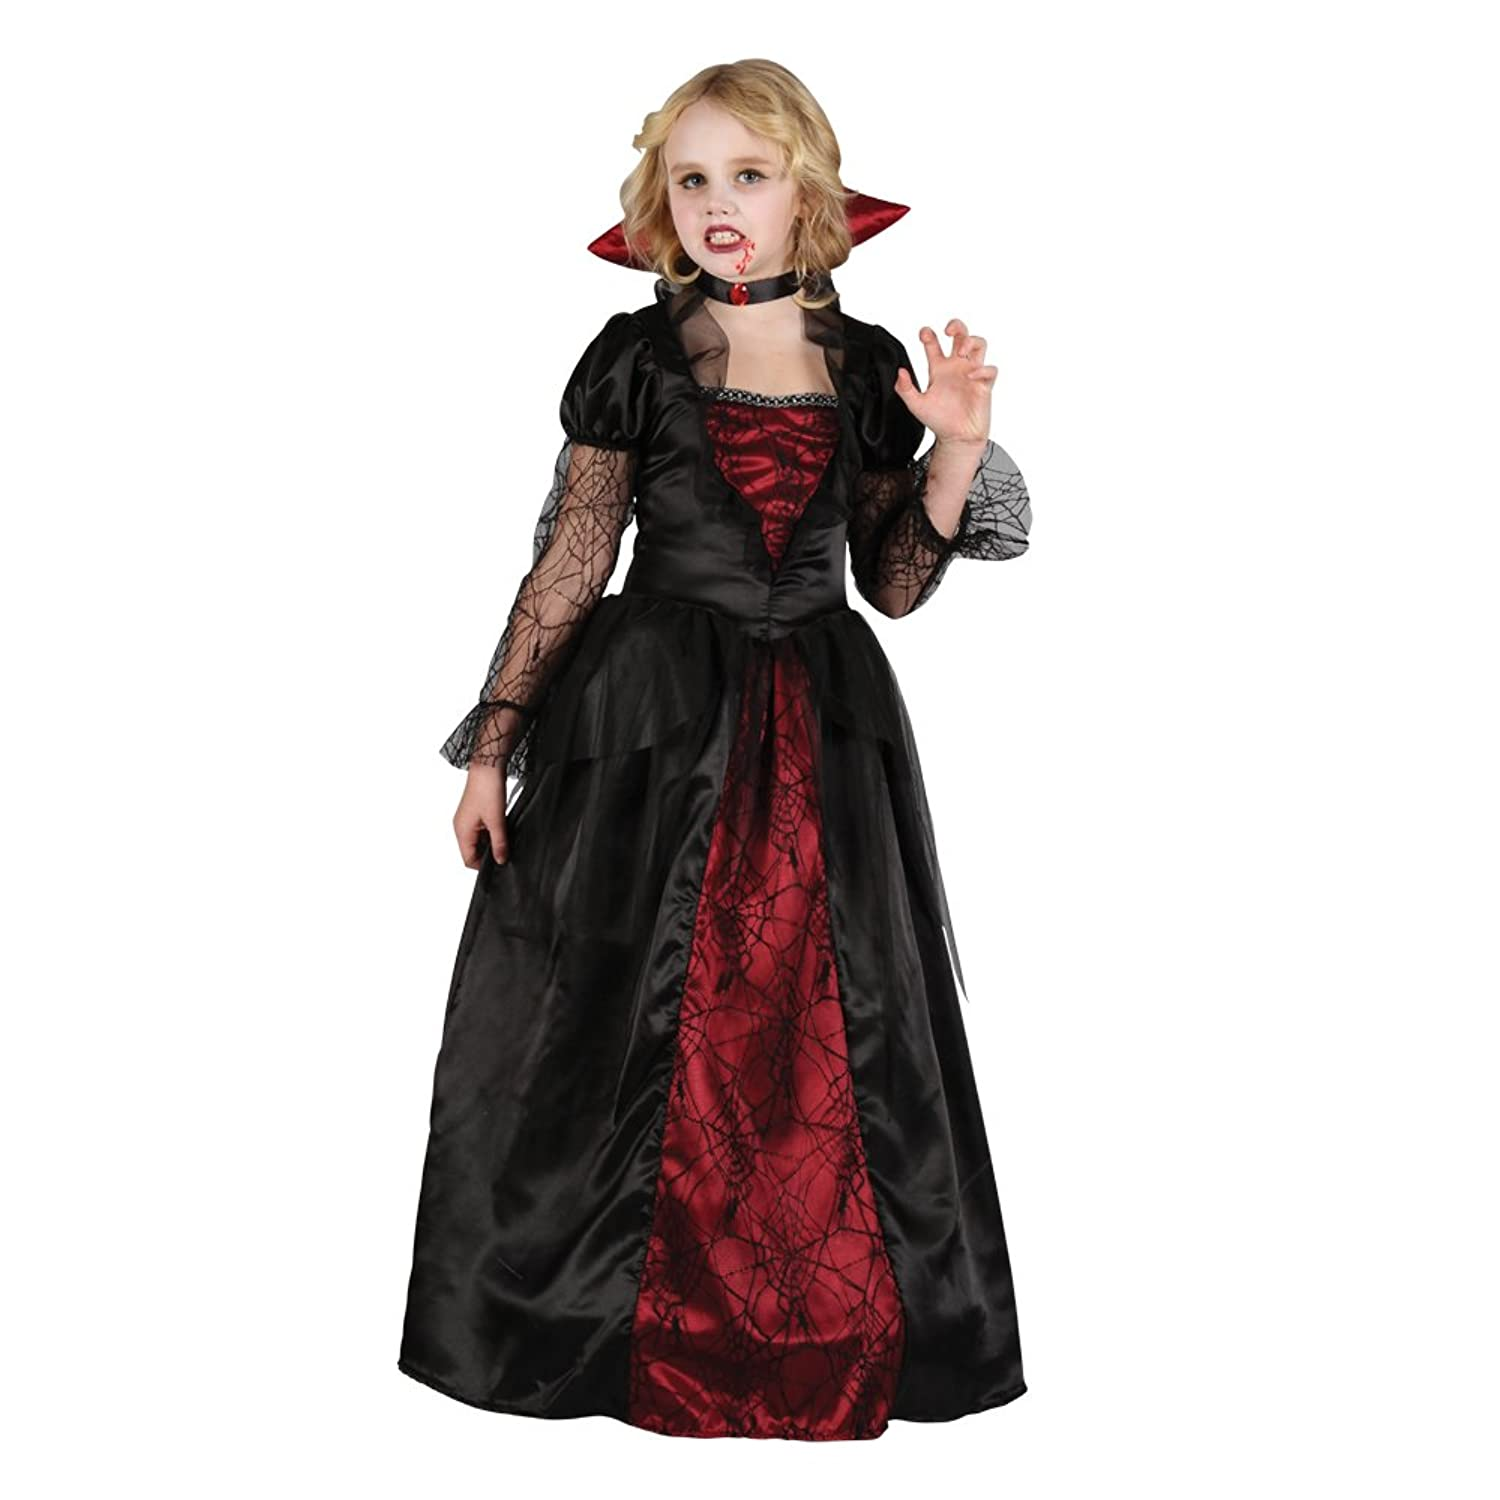 GIRLS VAMPIRE PRINCESS HALLOWEEN OUTFIT - (RED, BLACK): Amazon.co ...